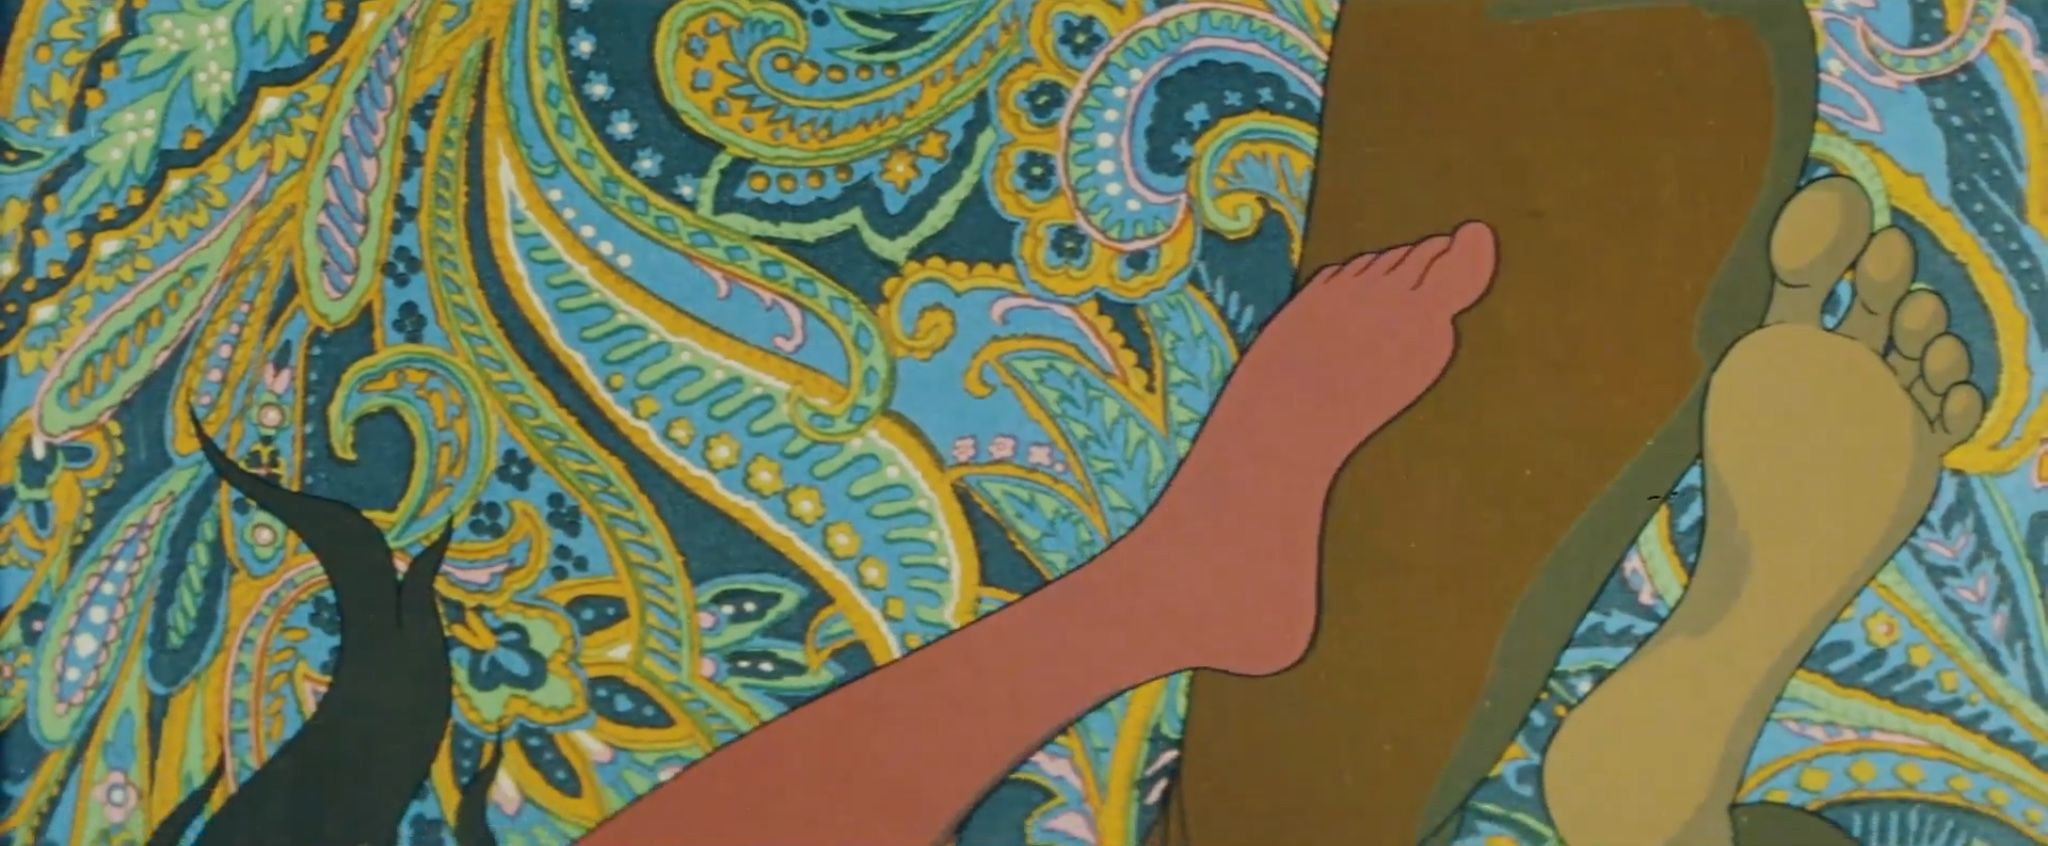 Adult Anime A Thousand And One Nights 1969